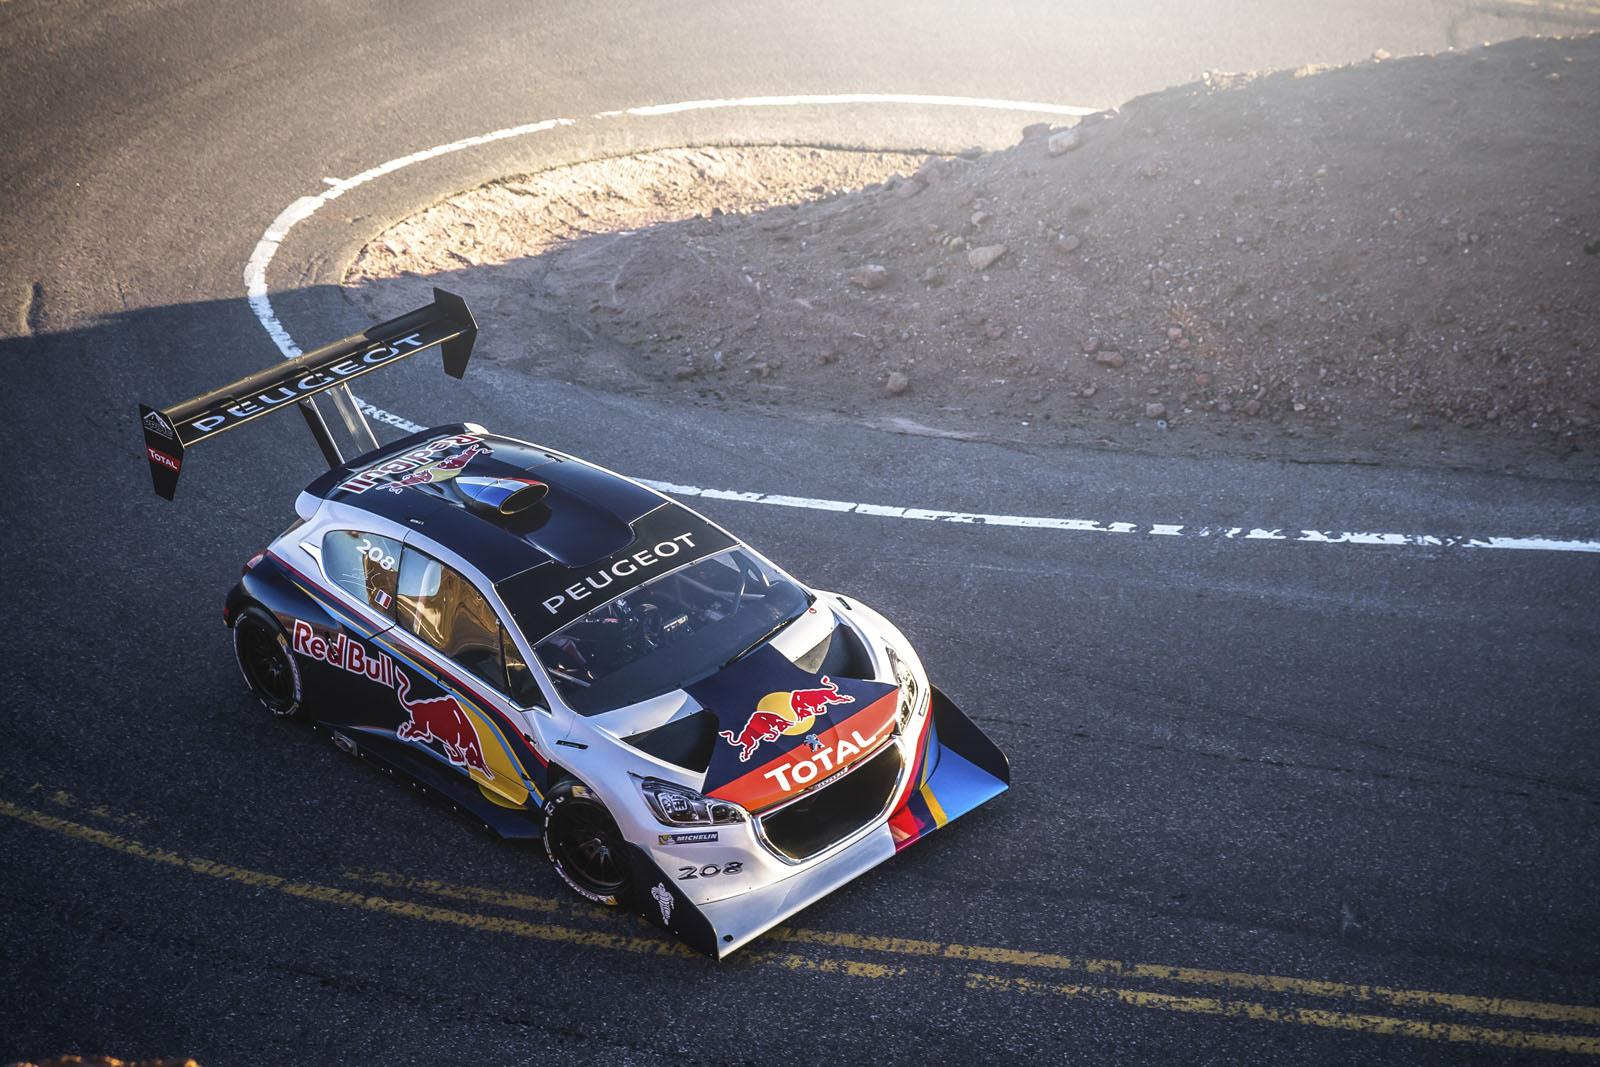 Sebastien Loeb with the Peugeot 208 T16